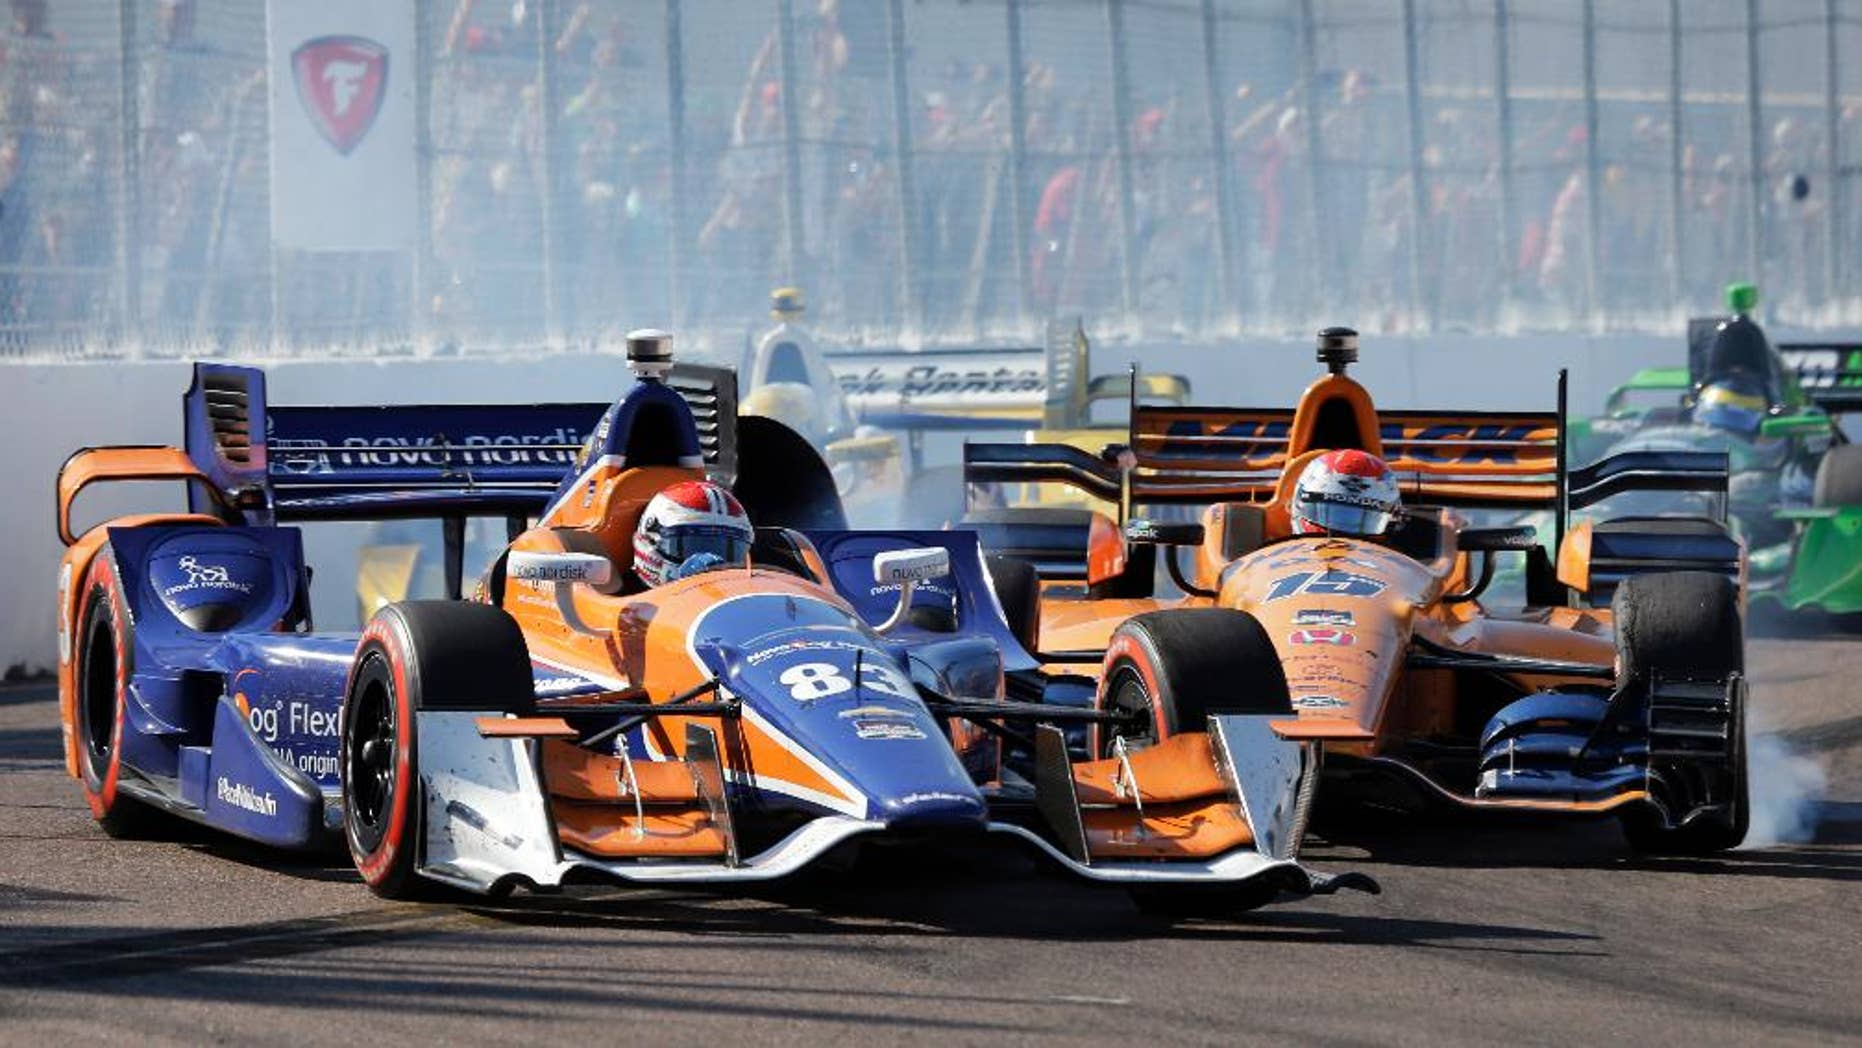 Charlie Kimball (83) gets hit by Graham Rahal while driving into Turn 10 during the IndyCar Firestone Grand Prix of St. Petersburg auto race Sunday, March 29, 2015, in St. Petersburg, Fla.  (AP Photo/Chris O'Meara)